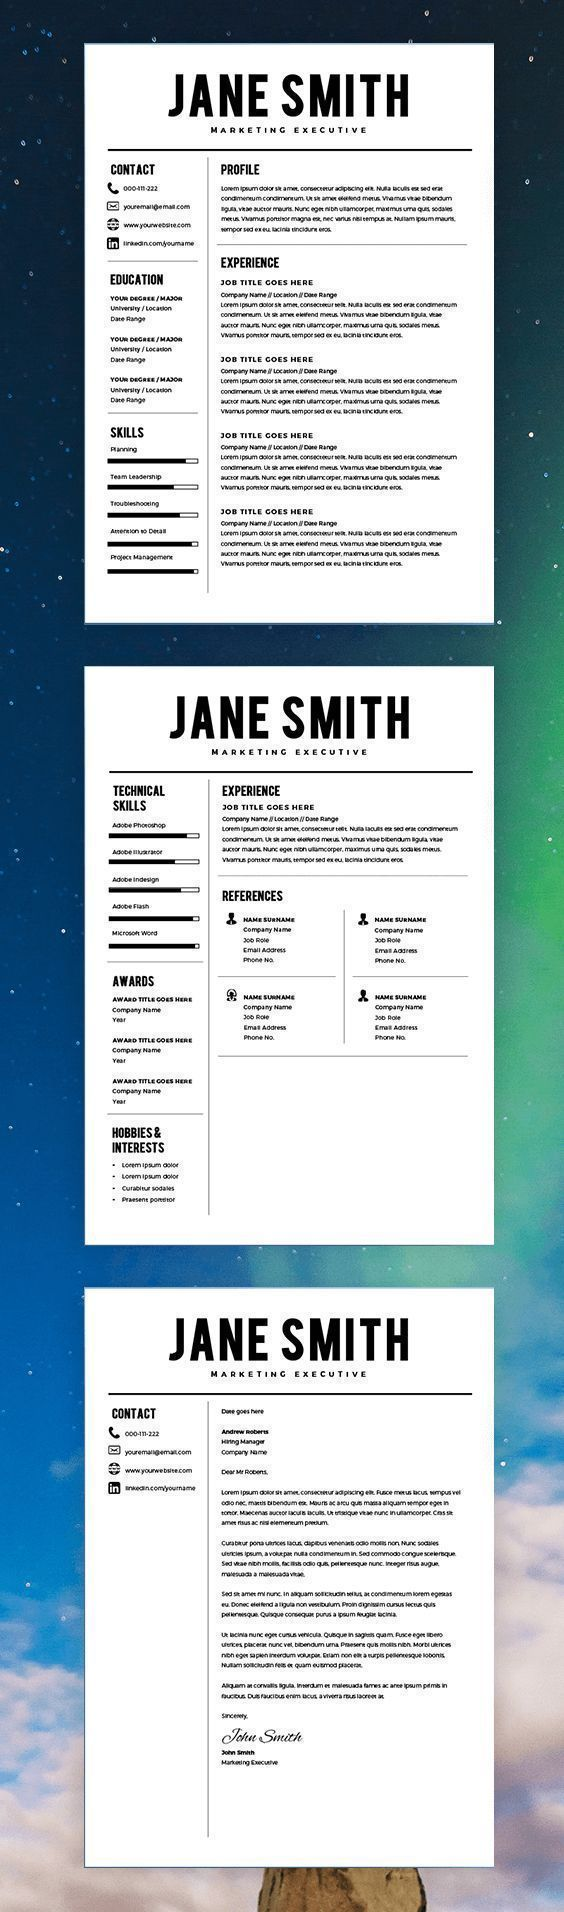 best resume template cv template free cover letter ms word on mac - Resume Template Free Best